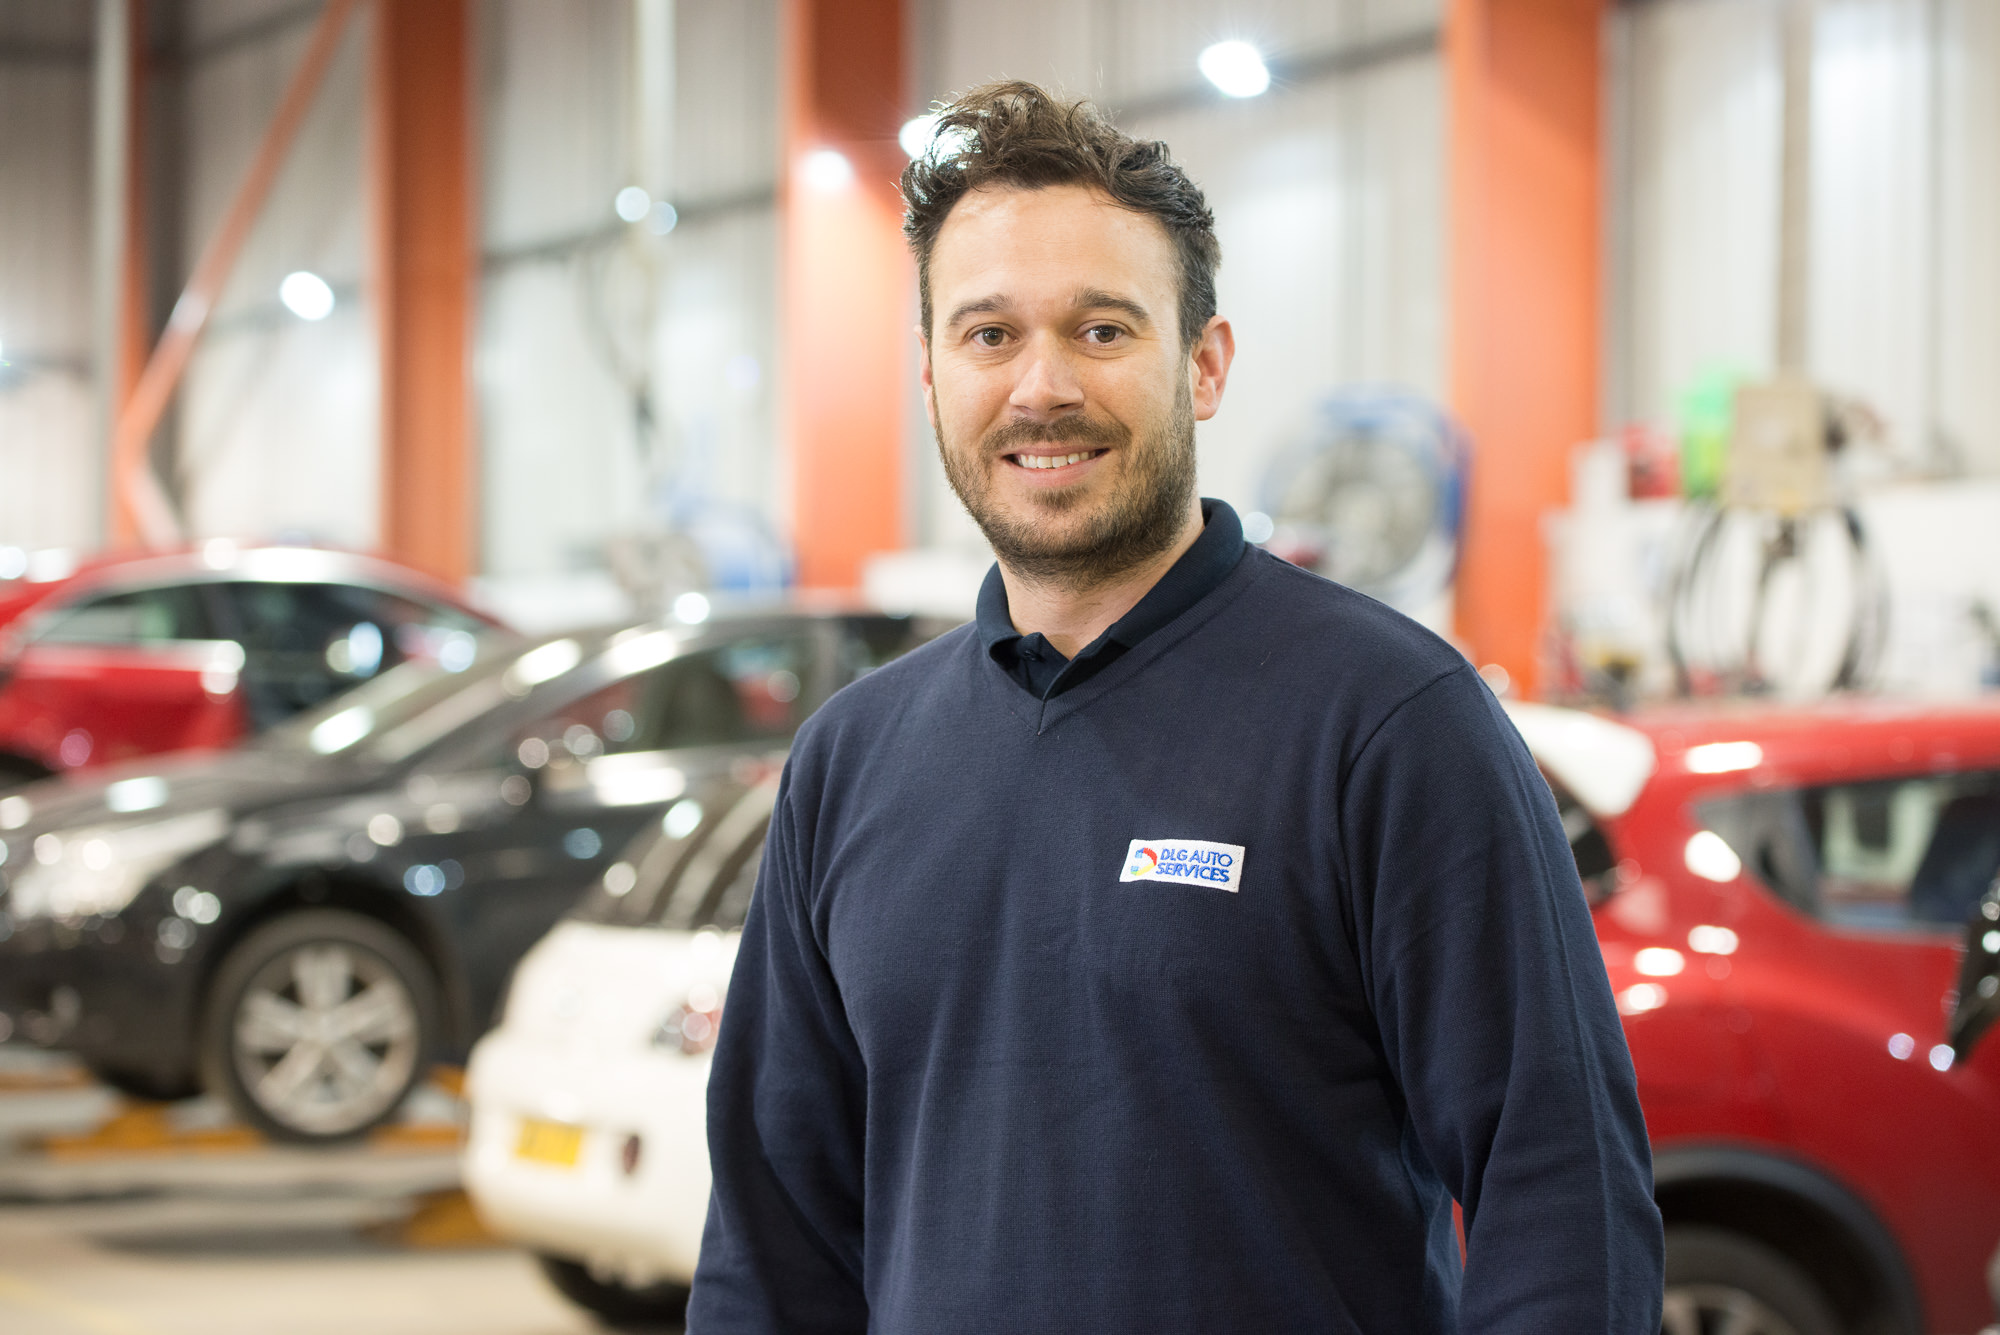 Manager - DLG Auto Services